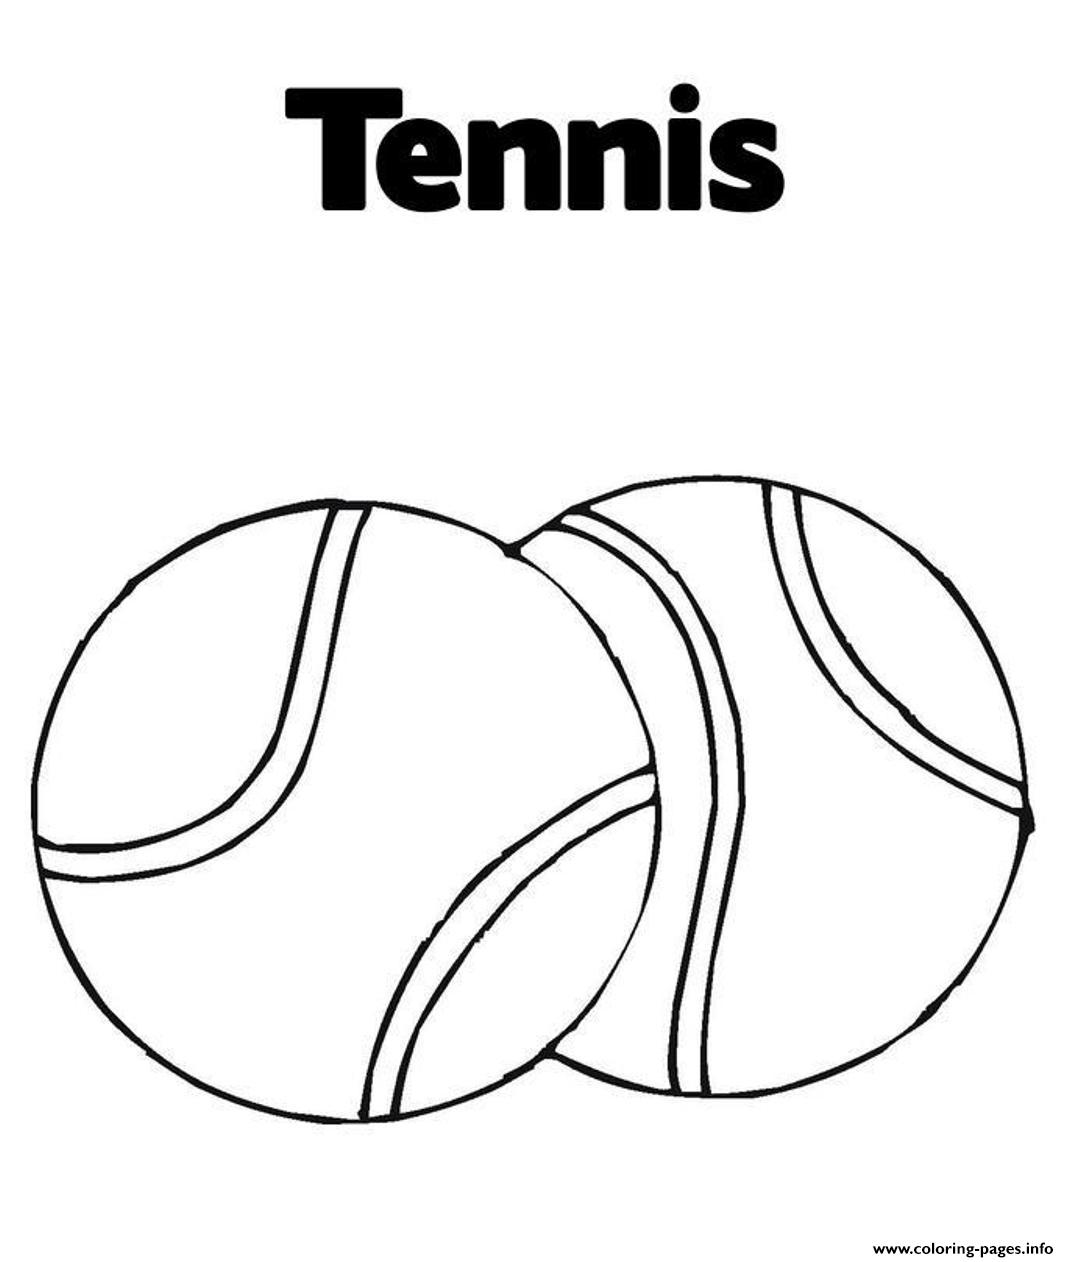 Sports Balls Coloring Pages - Coloring Home | 1262x1069